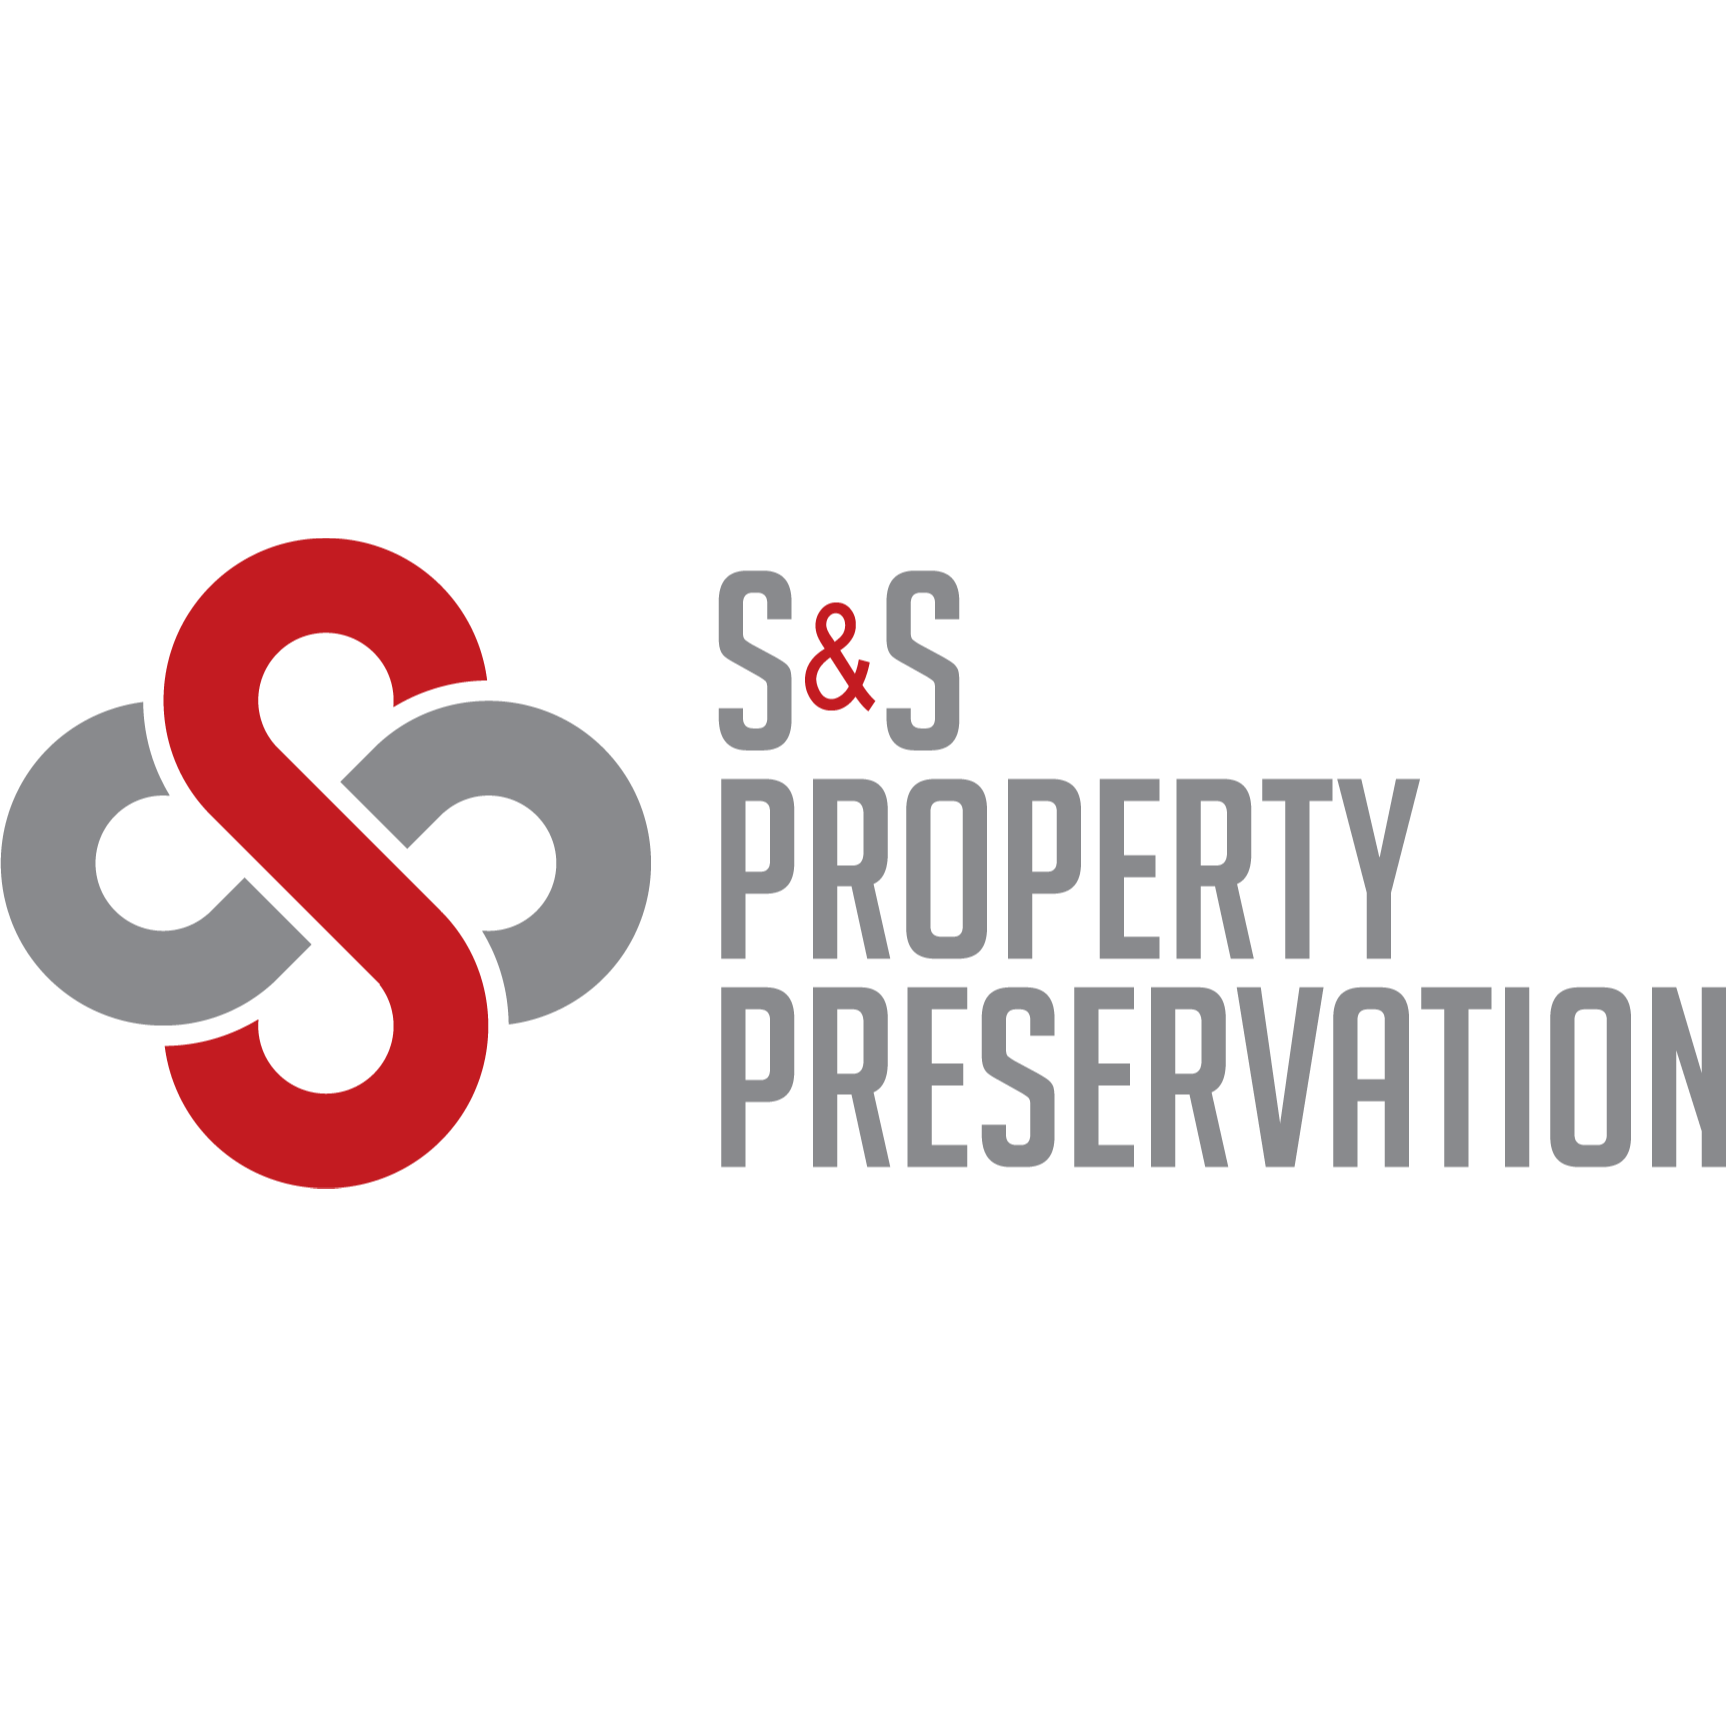 S&S Property Preservation